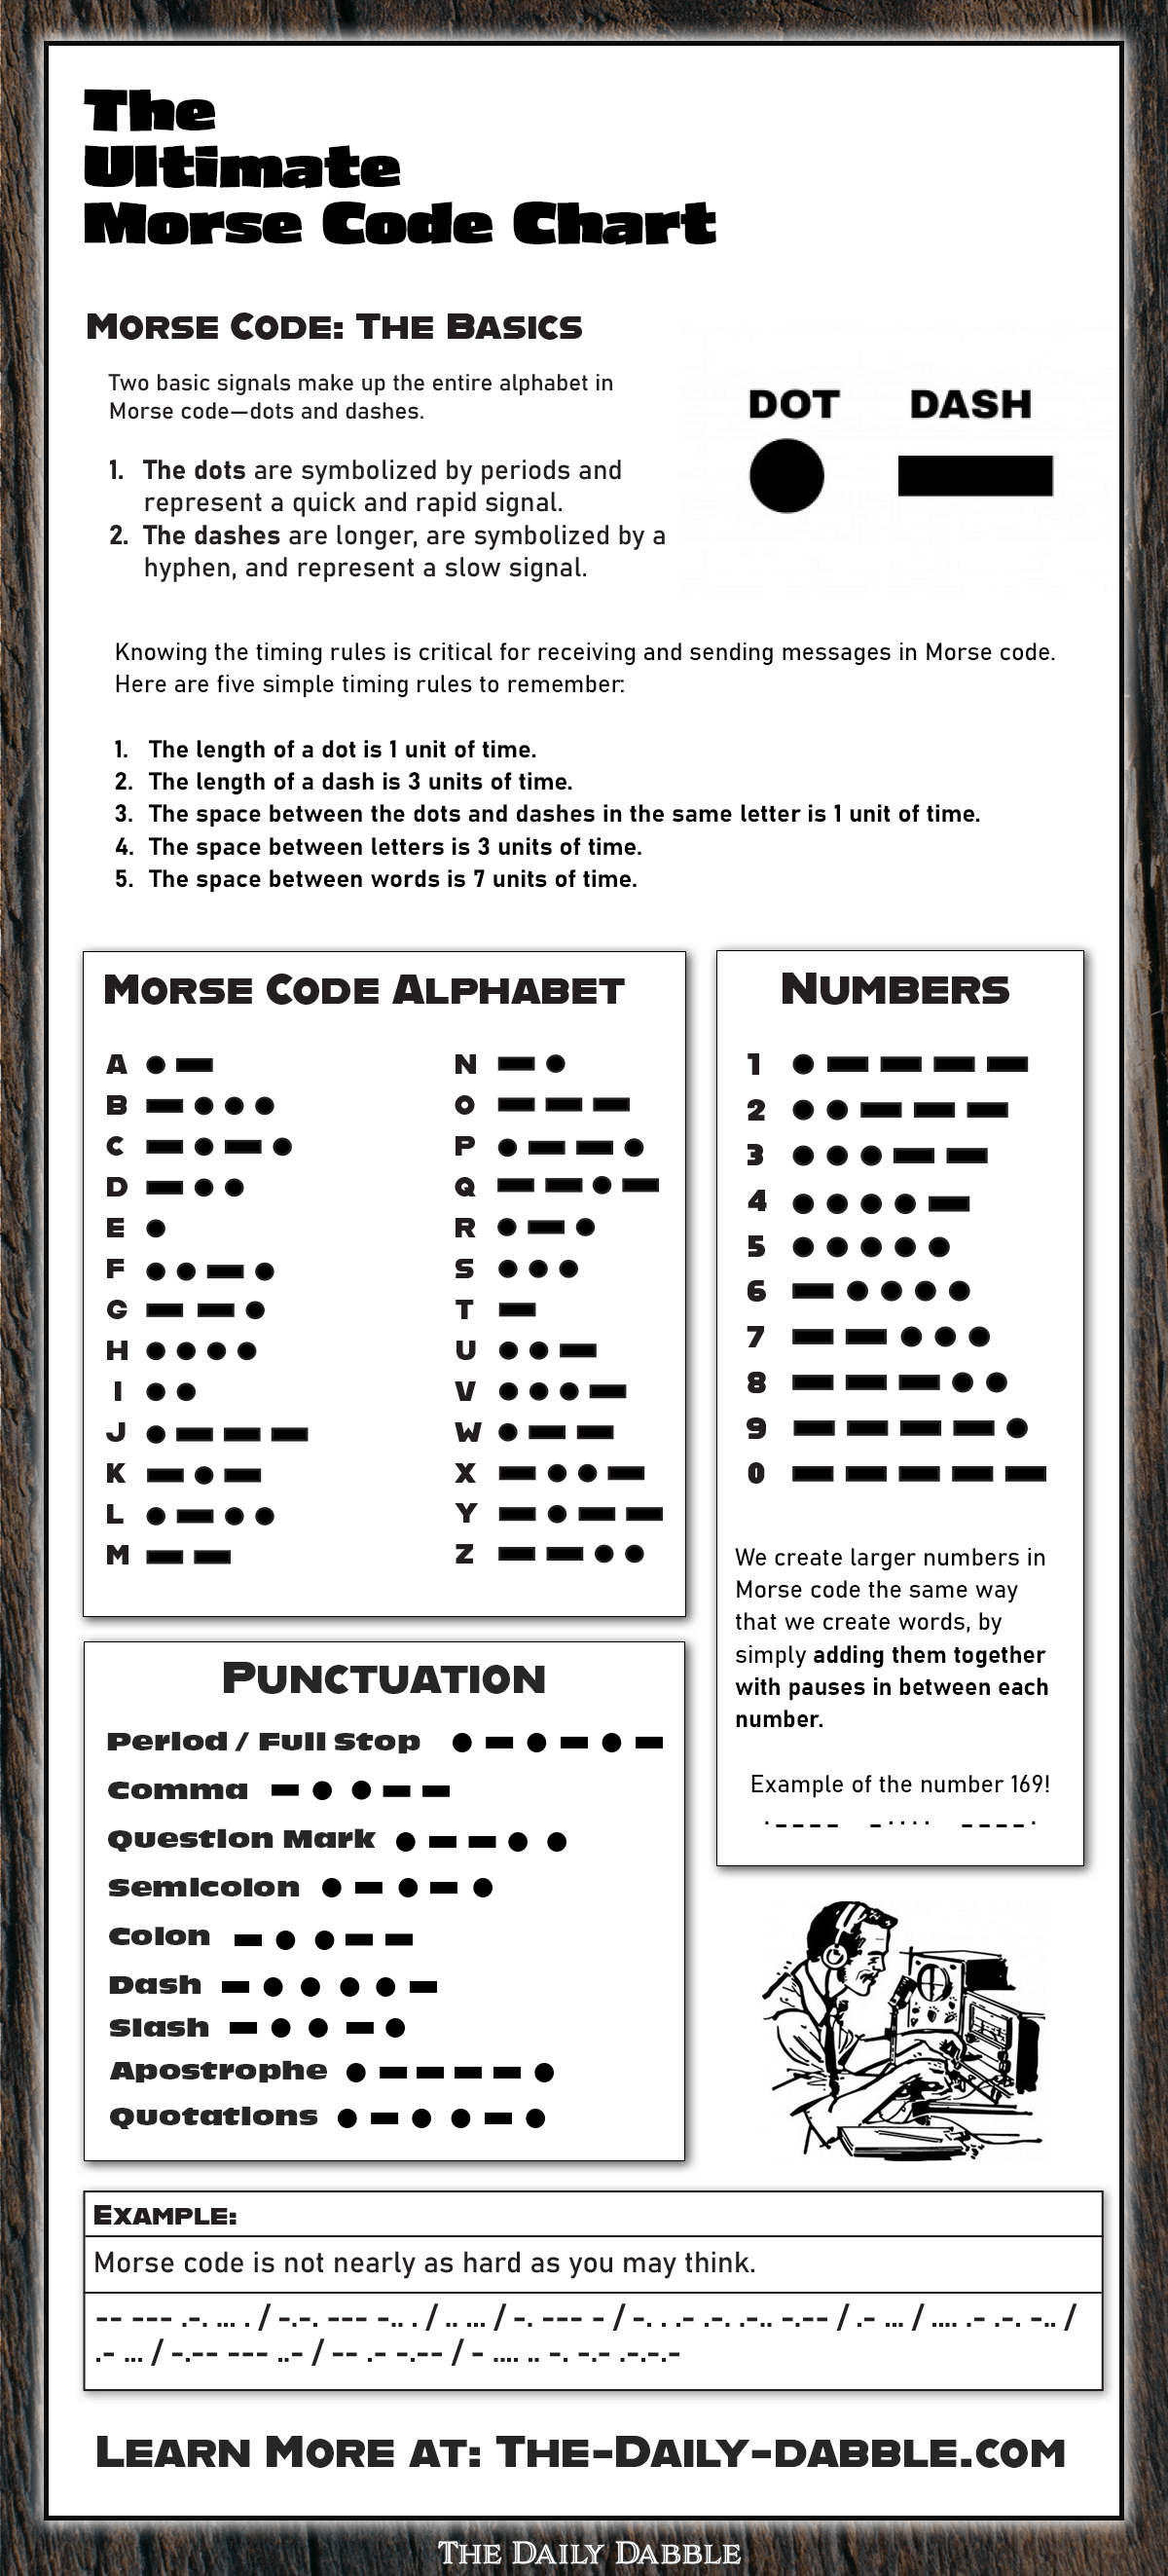 This Morse code chart includes the alphabet, numbers, and punctuation—as well as a few basic tips on how to use it.